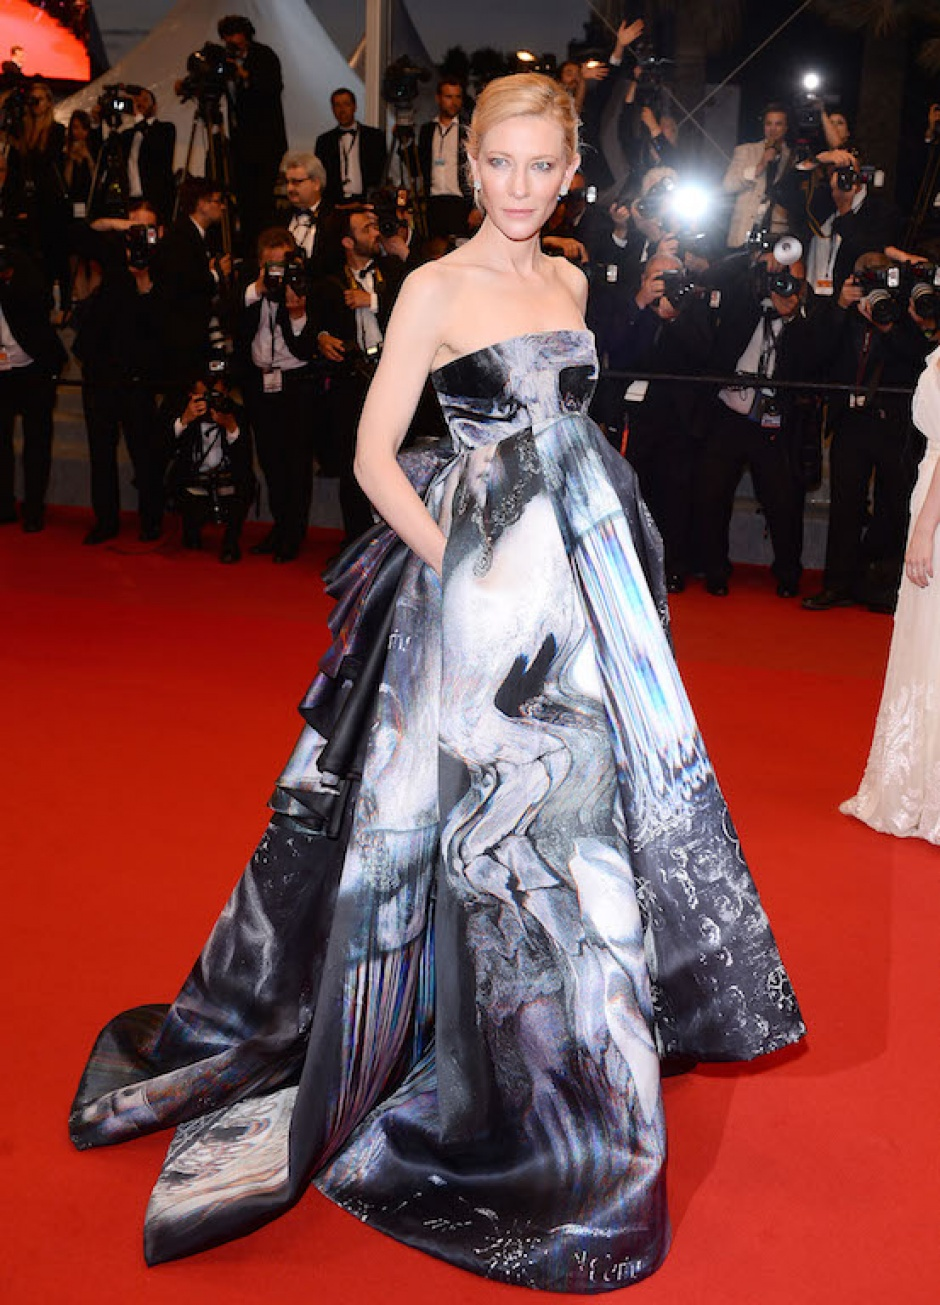 Cate Blanchett wearing a Giles gown at the Cannes Film Festival